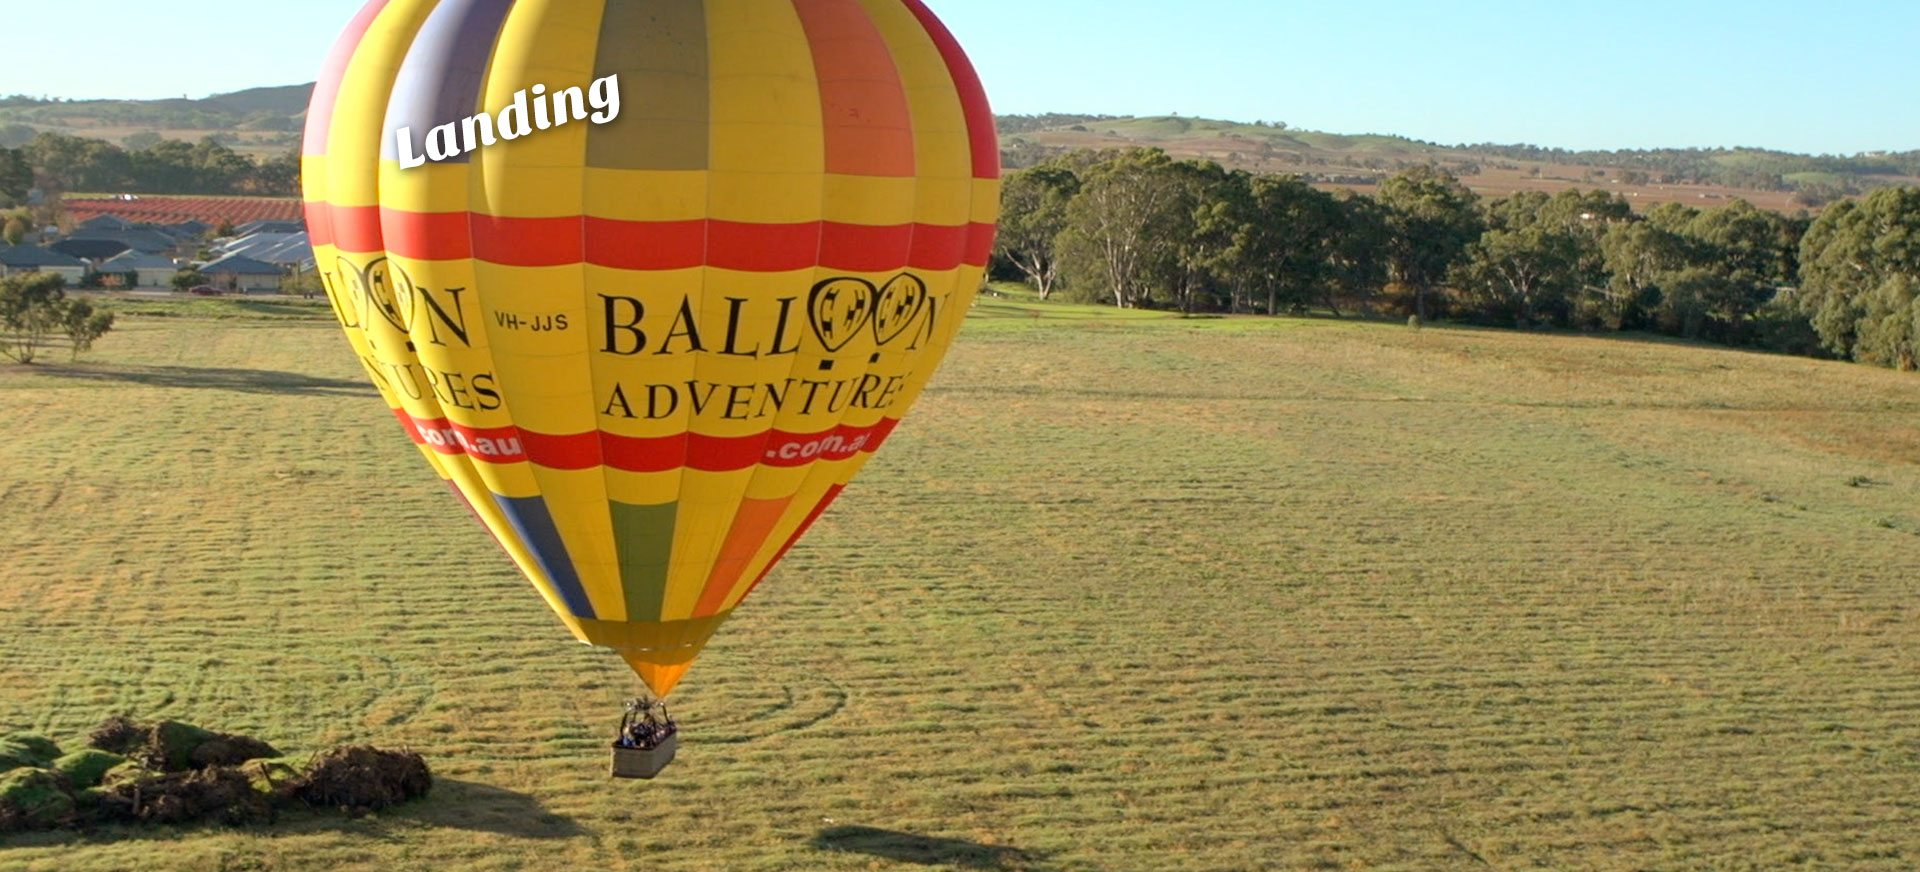 balloon-adventures-hot-air-balloon-flights-over-the-barossa-valley-flight-step-16